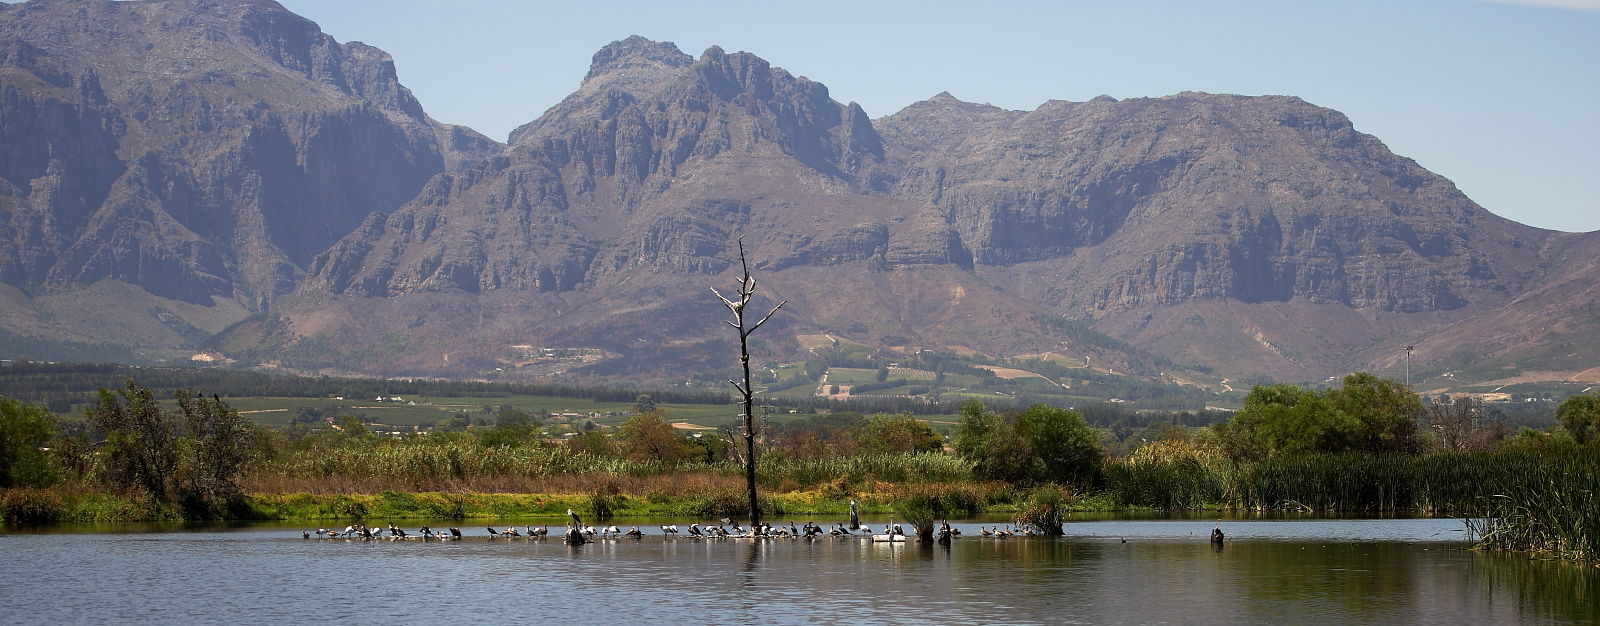 Paarl Bird Sanctuary near Cape Town, South Africa © Steve Ogden